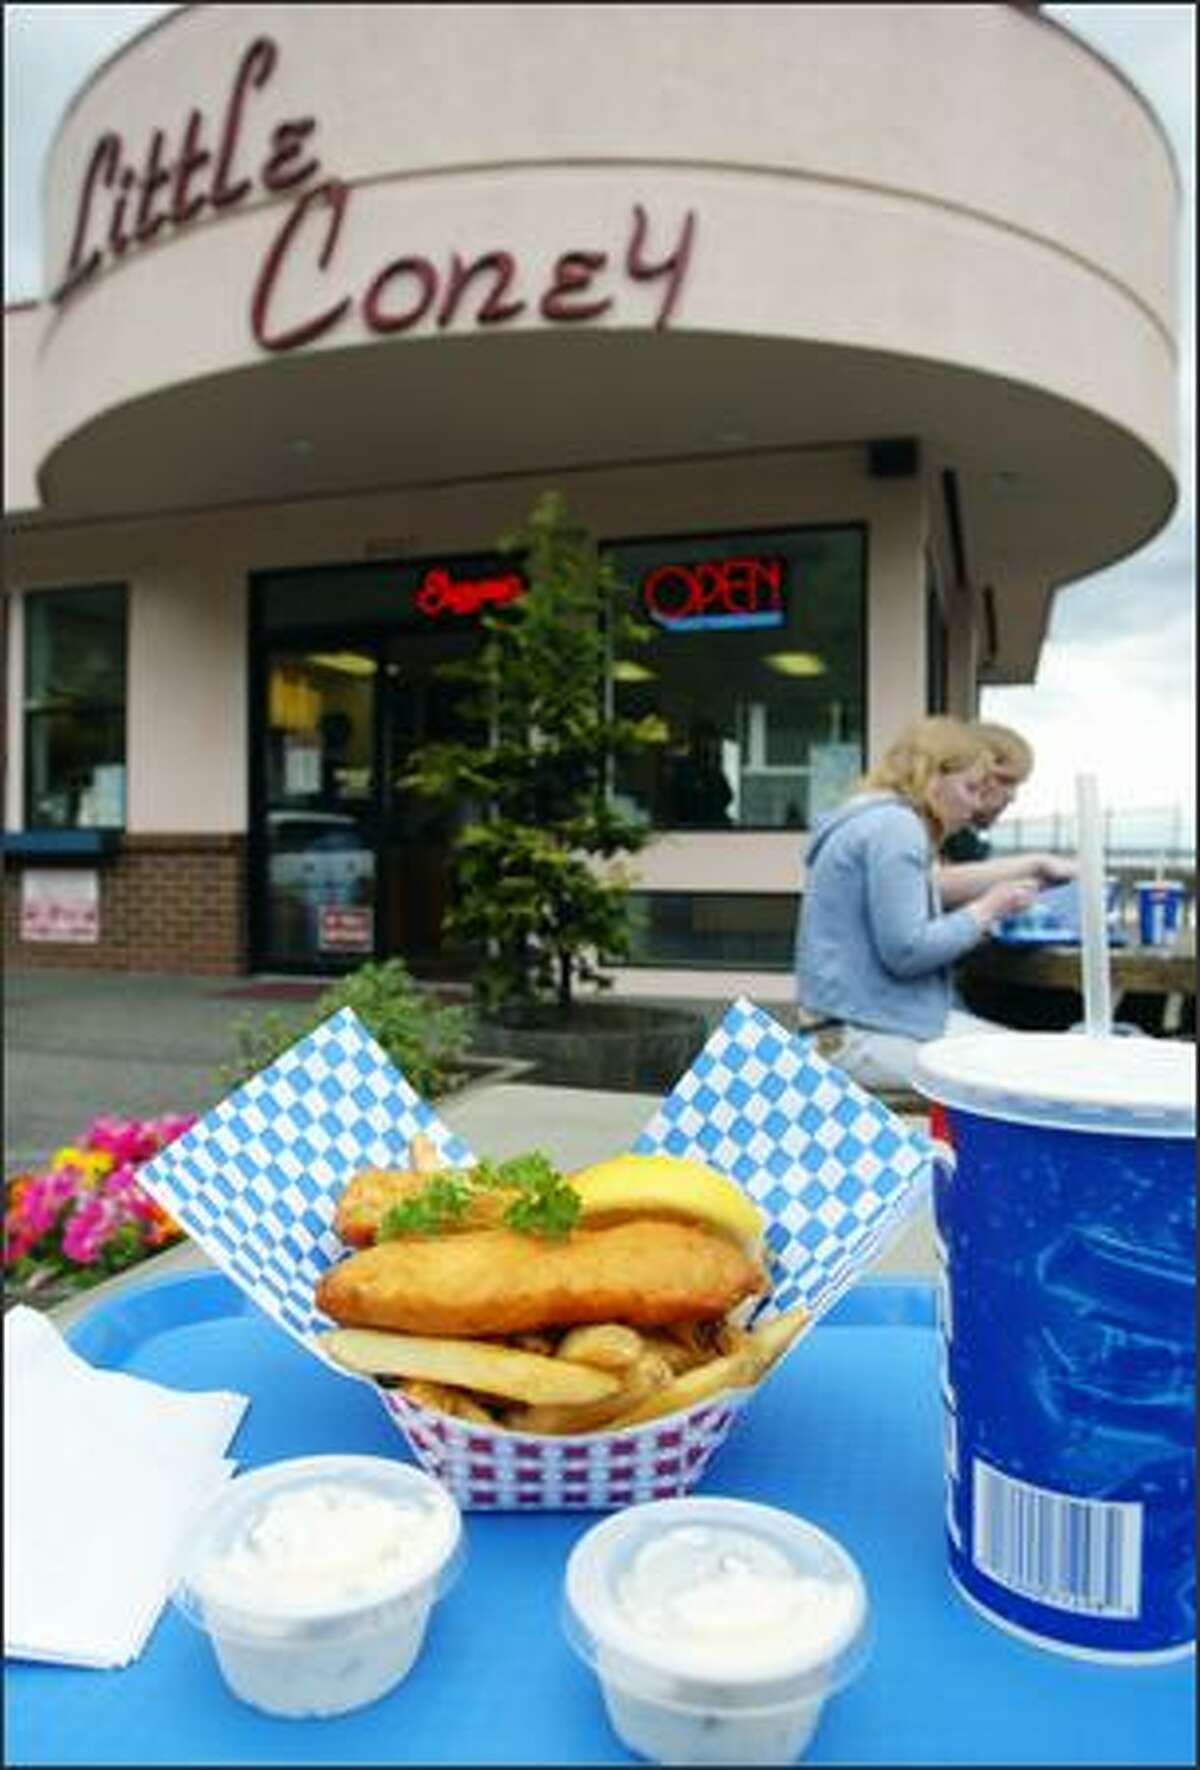 An order of fish and chips is ready for consumption at Little Coney. Indoor and outdoor seating offers views of Puget Sound.